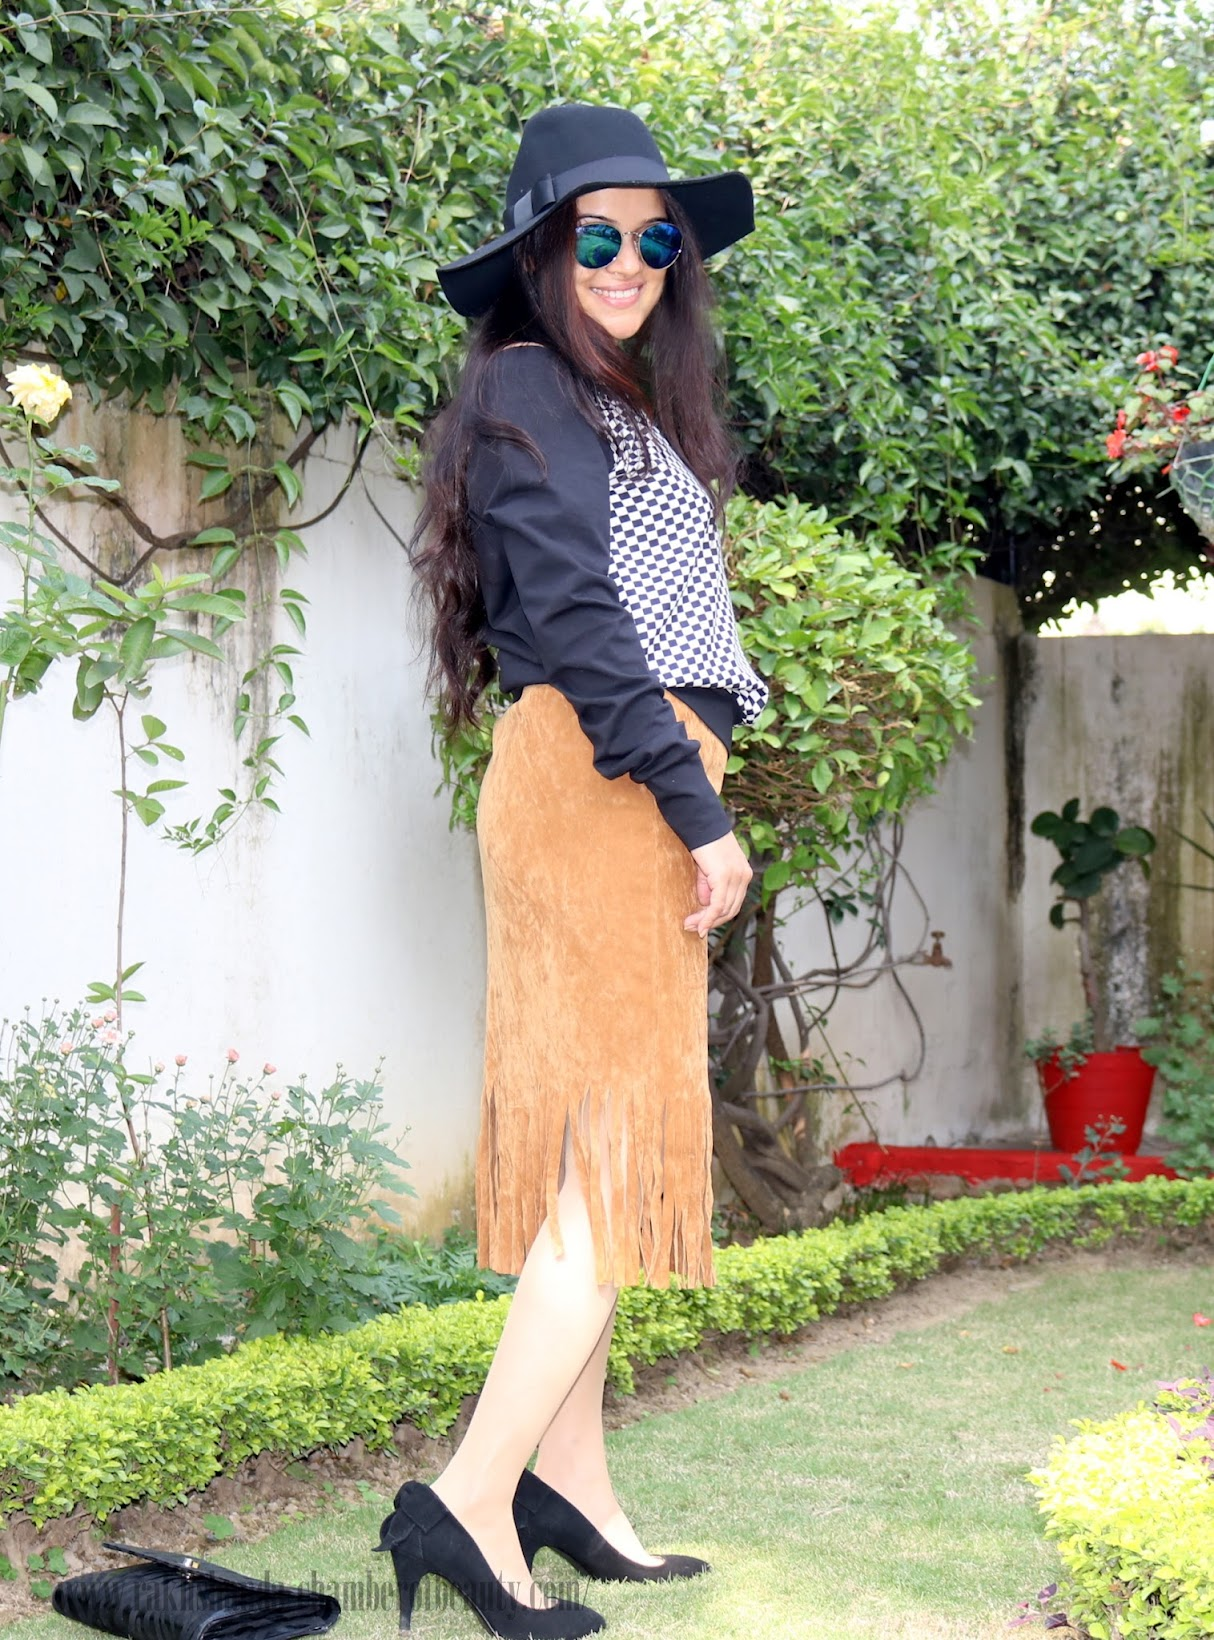 Styling a fringe hem suede skirt | Fashion trends 2015,Indian fashion blogger, fashion, retro fashion, how to wear suede skirt, fringes, Chamber of beauty, fashion blogger style, hat, OOTD, outfit of the day, Stalk By Love, Indian fashion blog, style tips, suede skirt